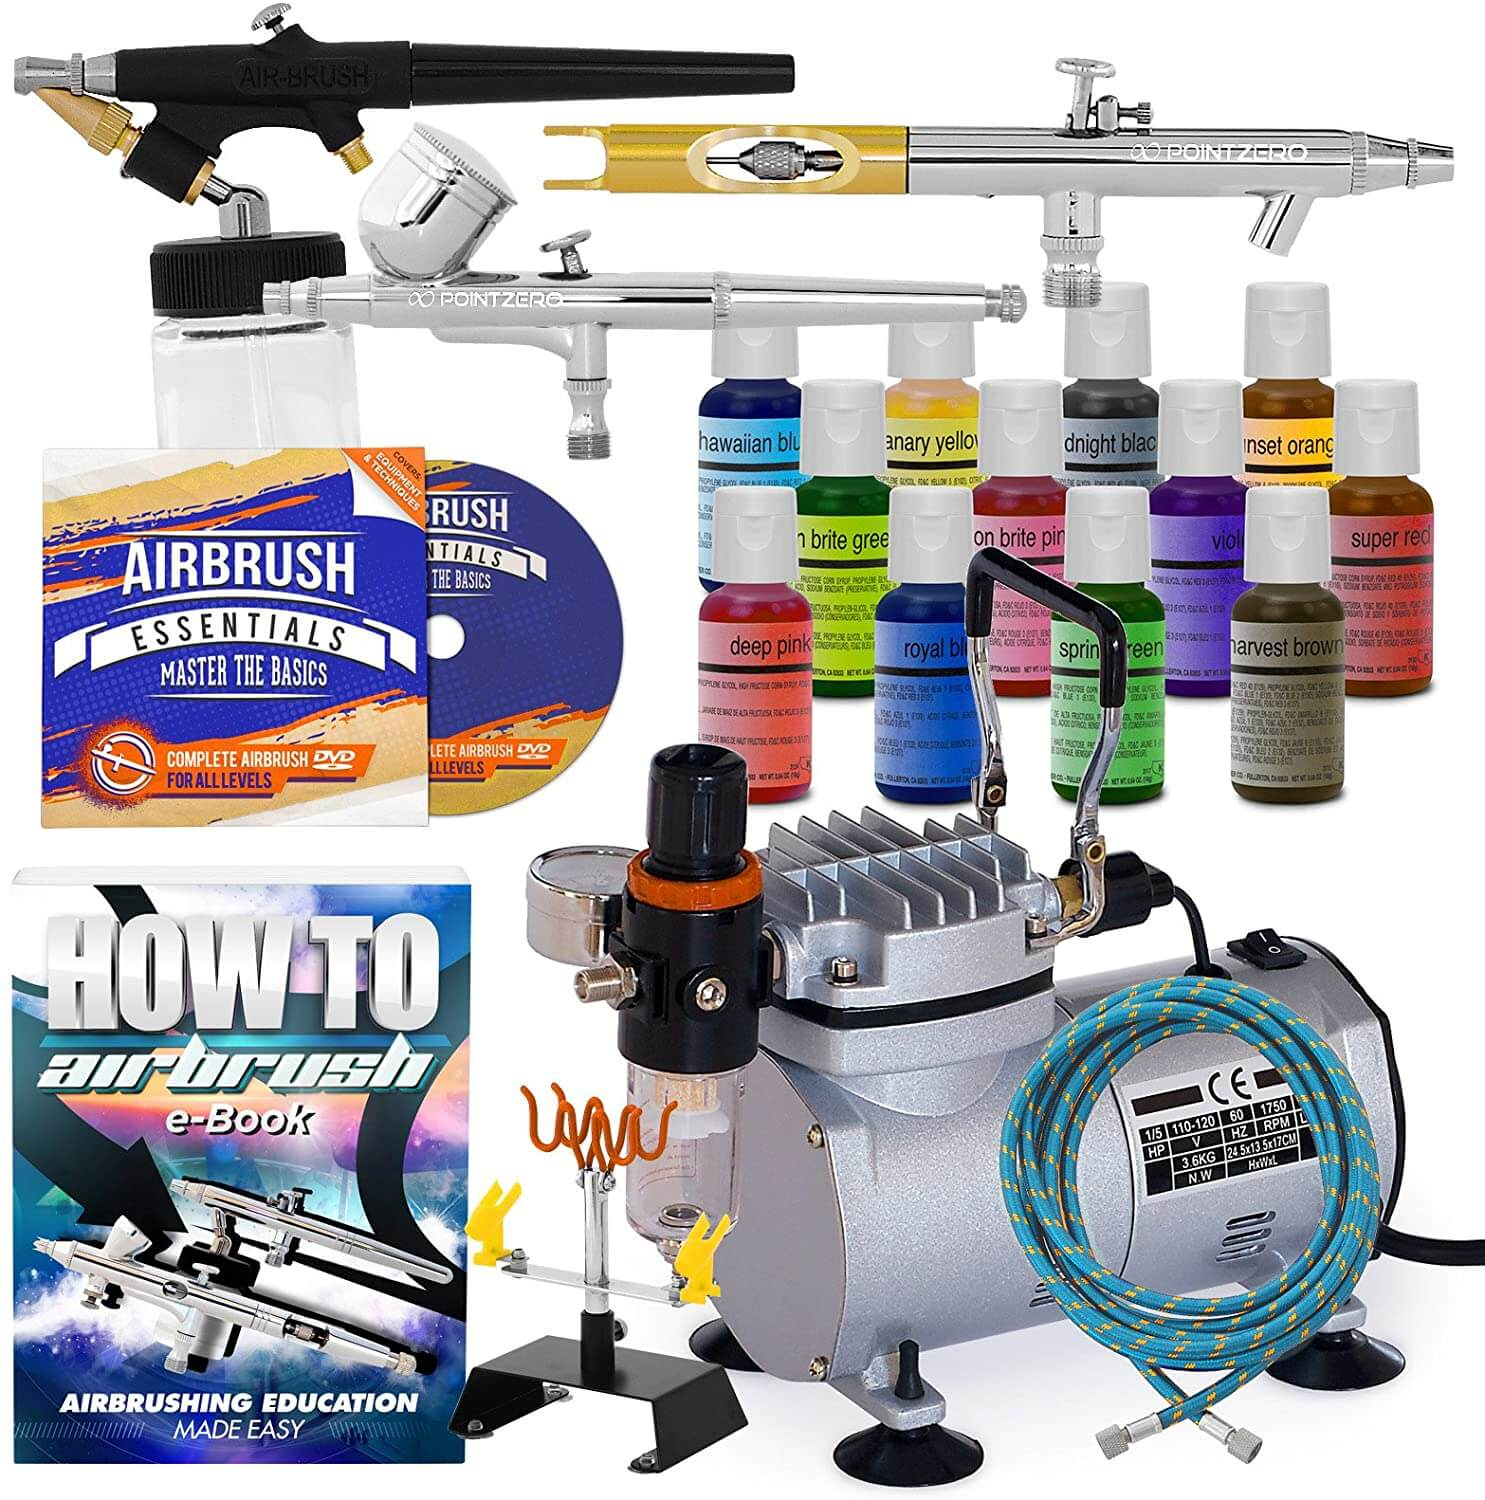 The 9 Best Airbrushes for Cake Decorating in 2020 | Food ...